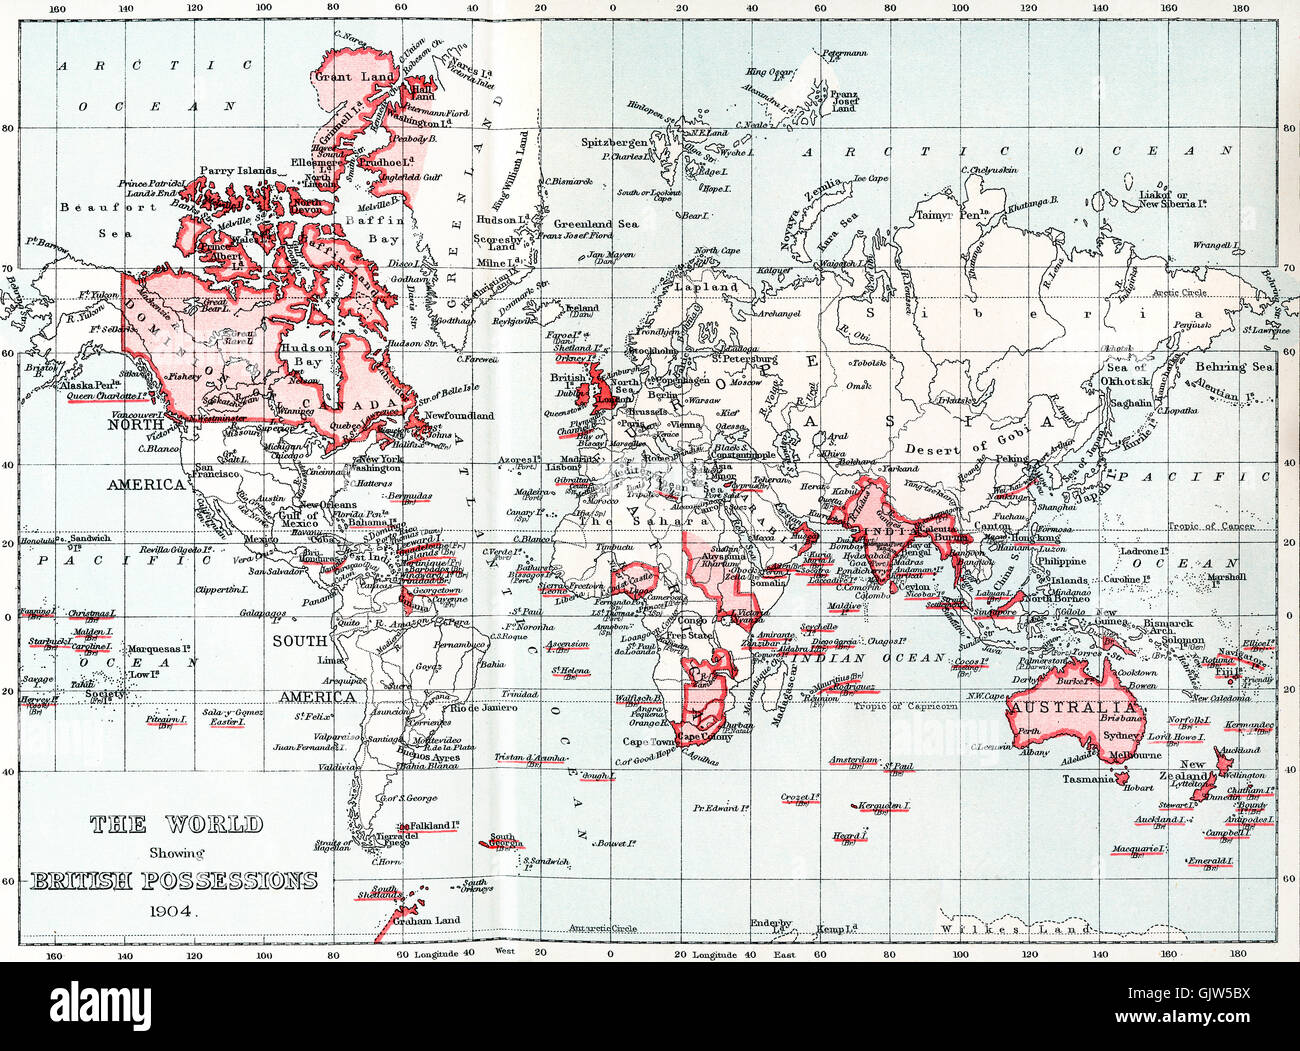 Map of the world showing British possessions in 1904. - Stock Image